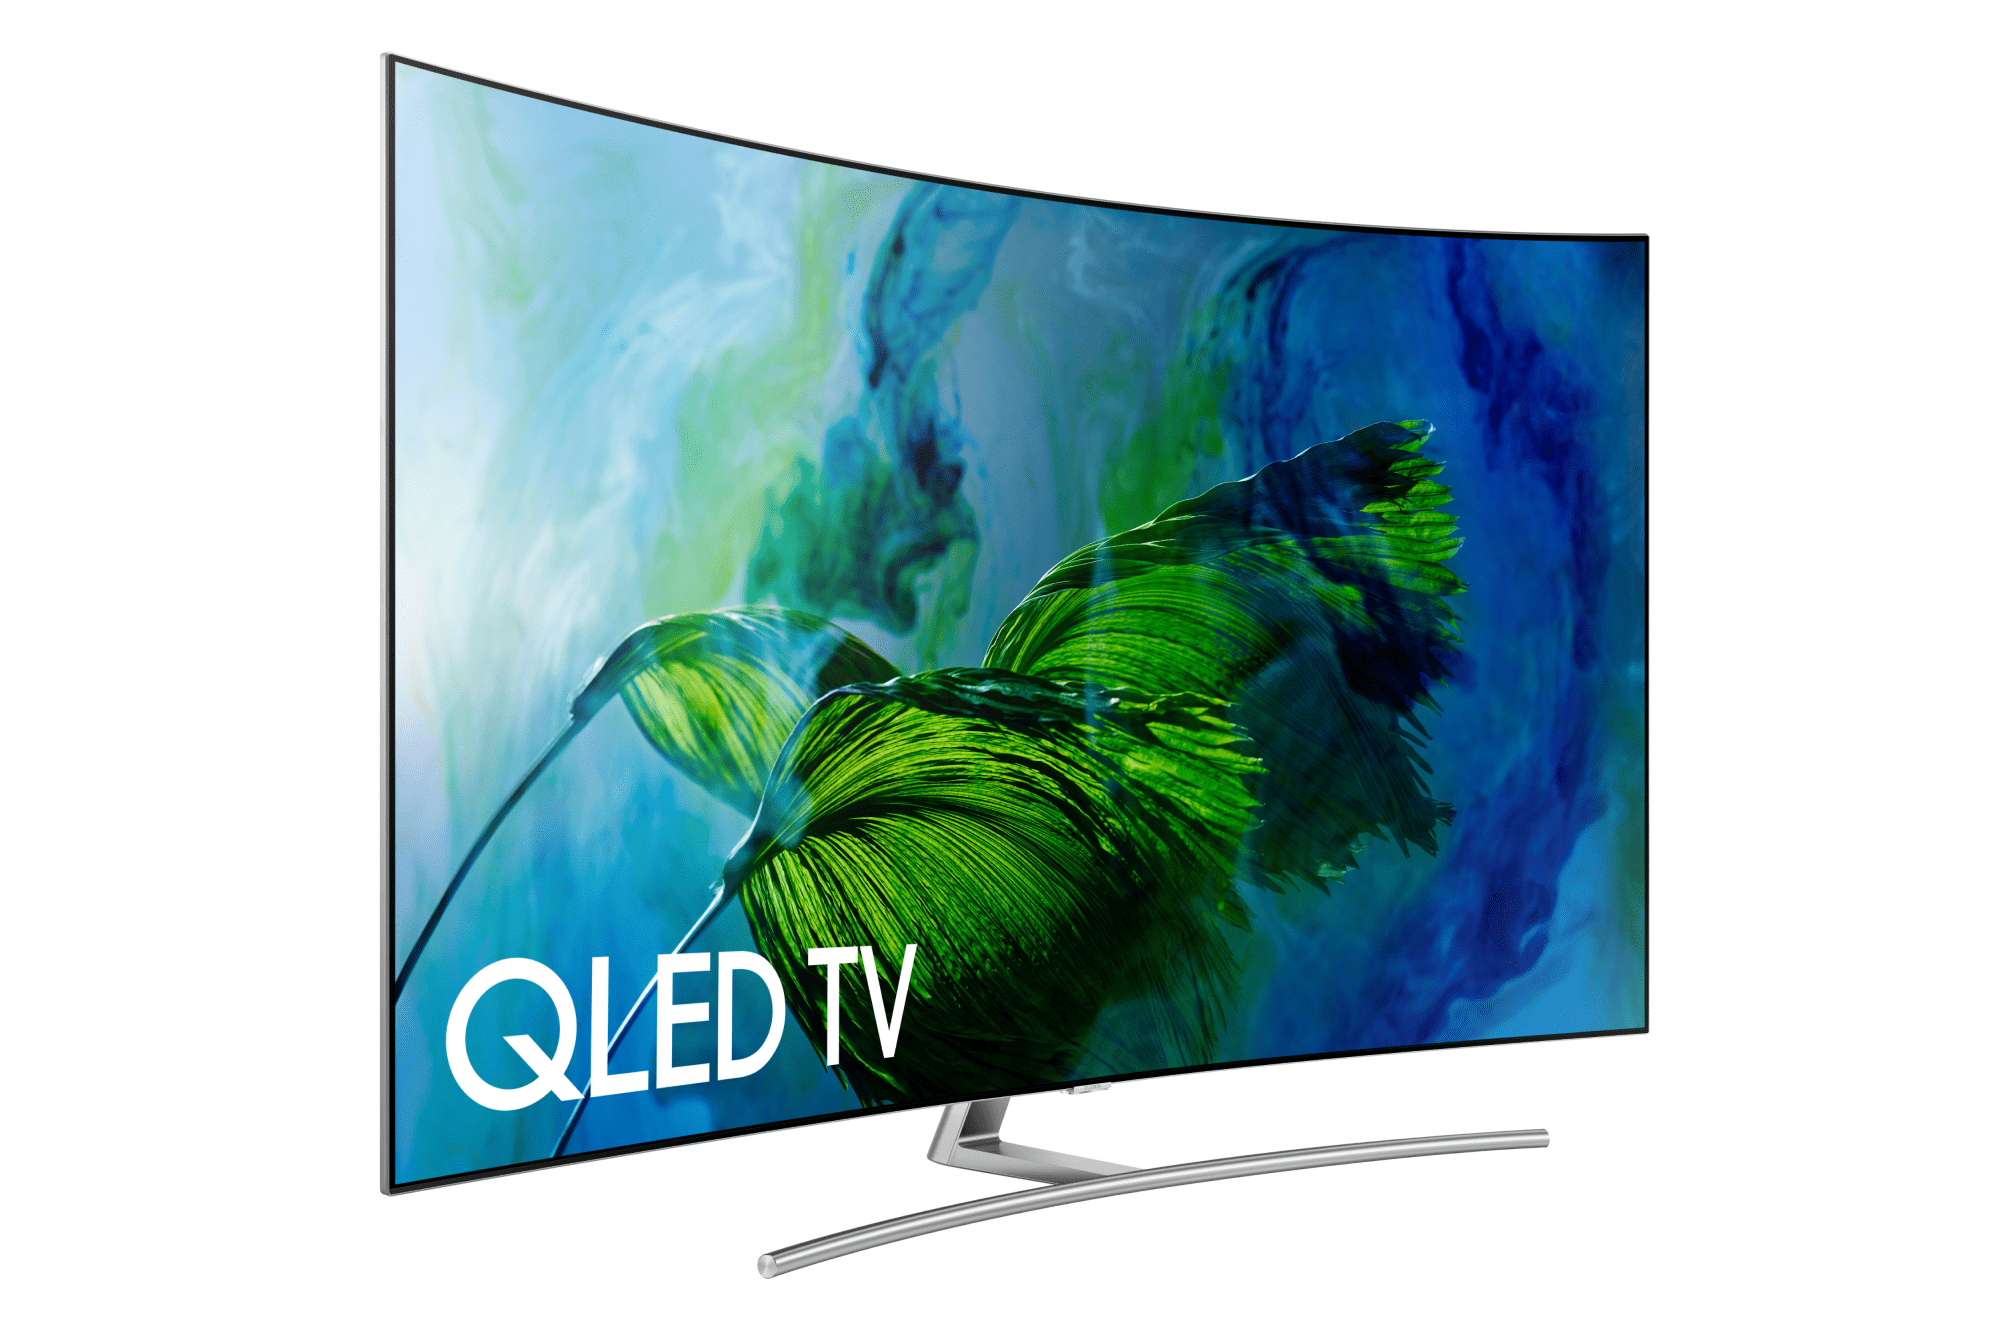 The Samsung QLED line of curved HDTVs feature almost no bezel.